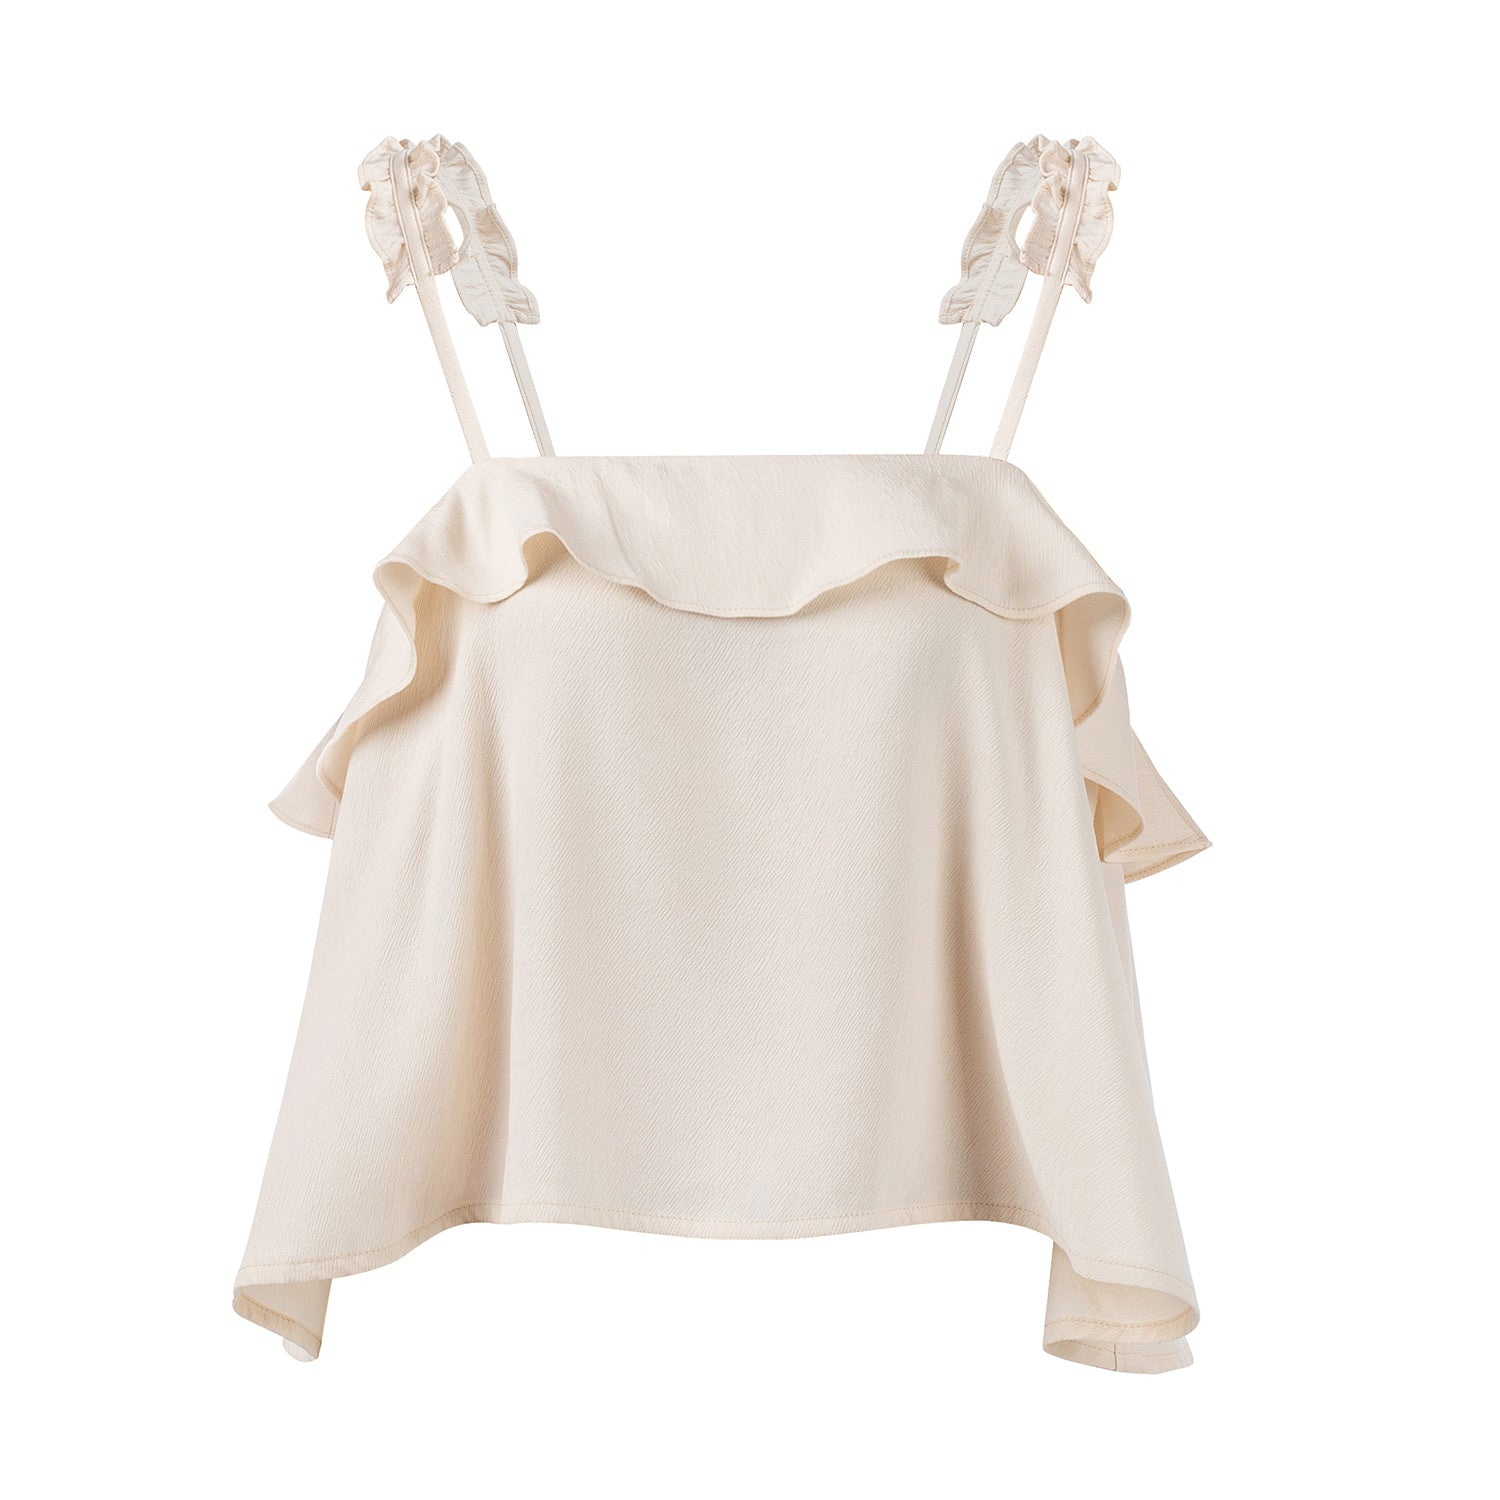 THE MARQUESA TOP